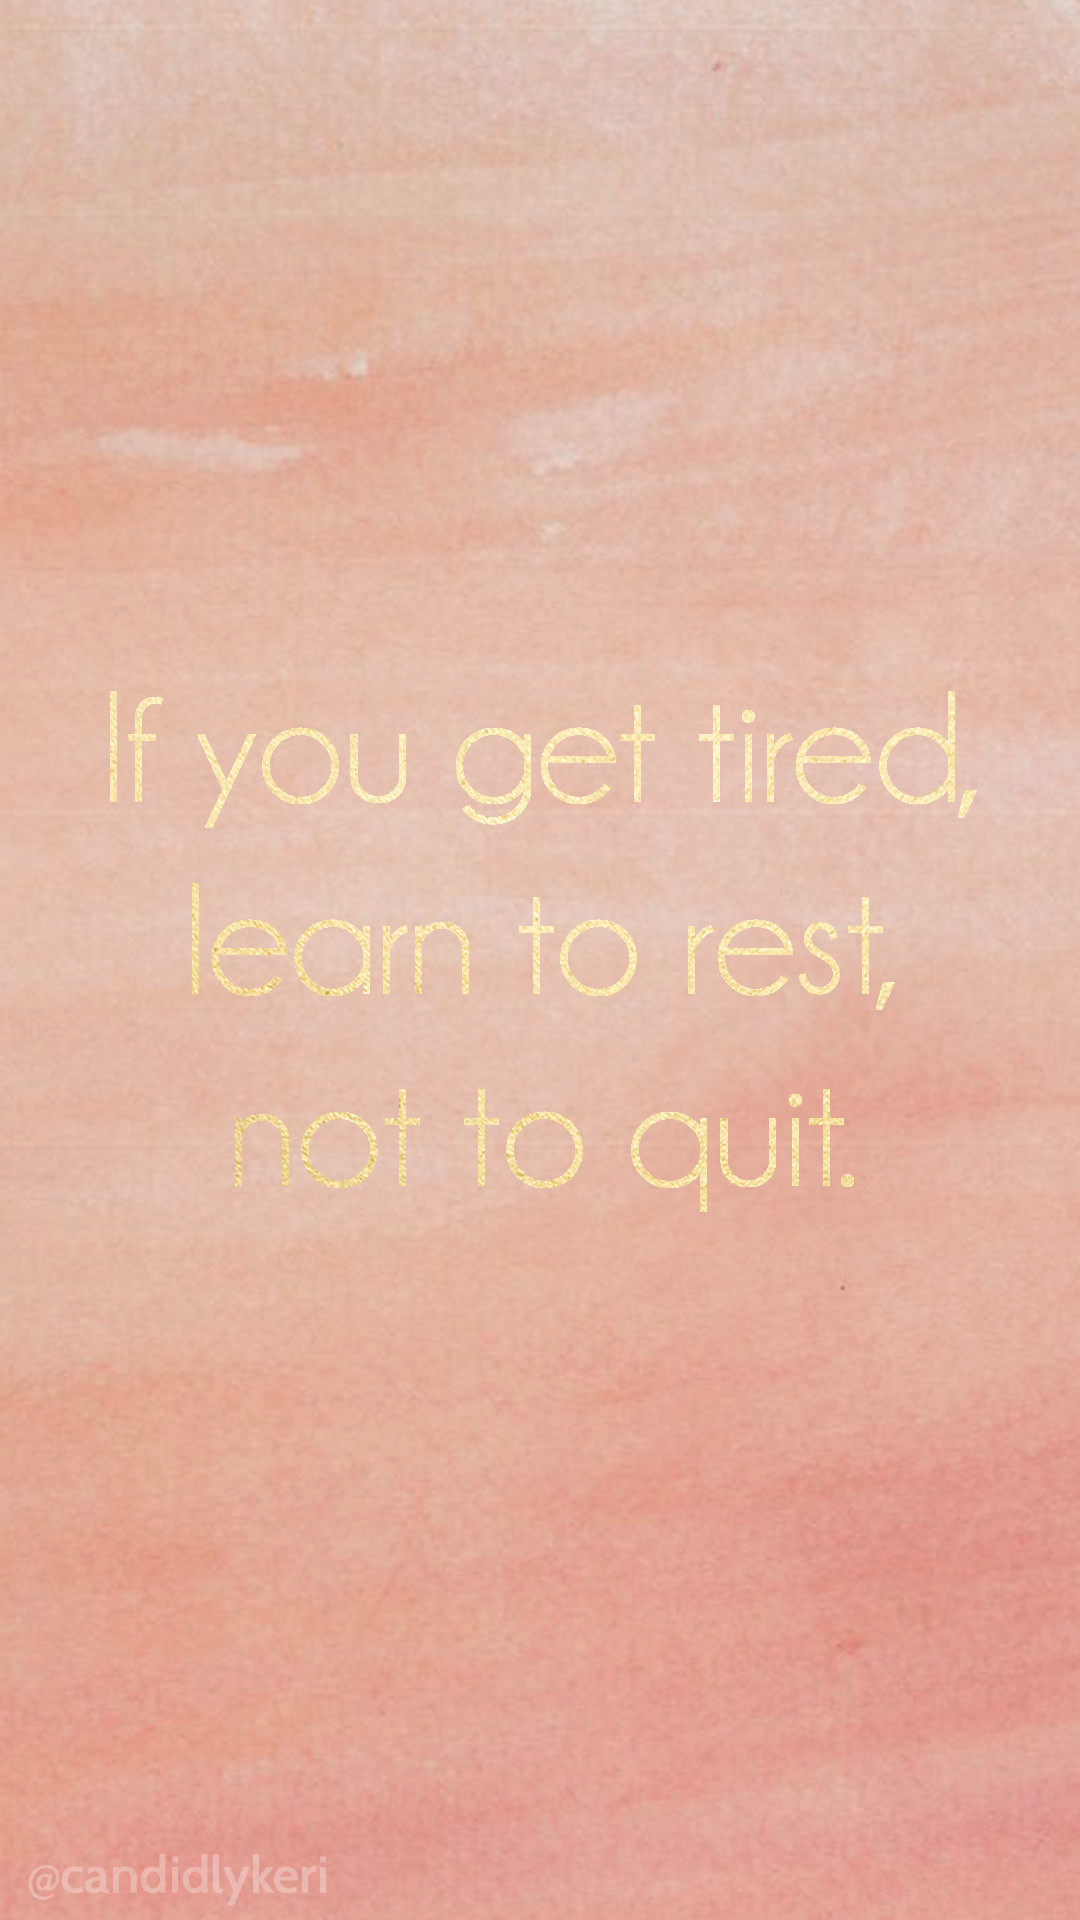 If you get tired, learn to rest, not quit gold foil inspirational  motivational quote